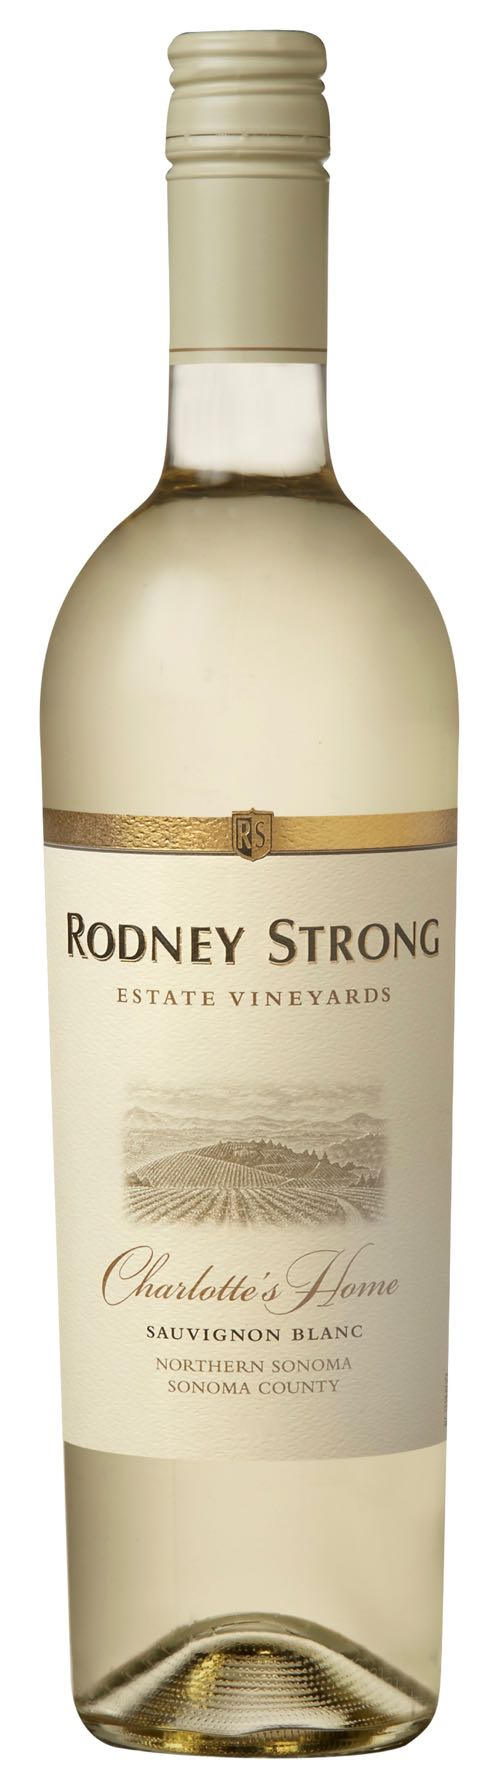 RODNEY STRONG SAUVIGNON BLANC CHARLOTTES HOME